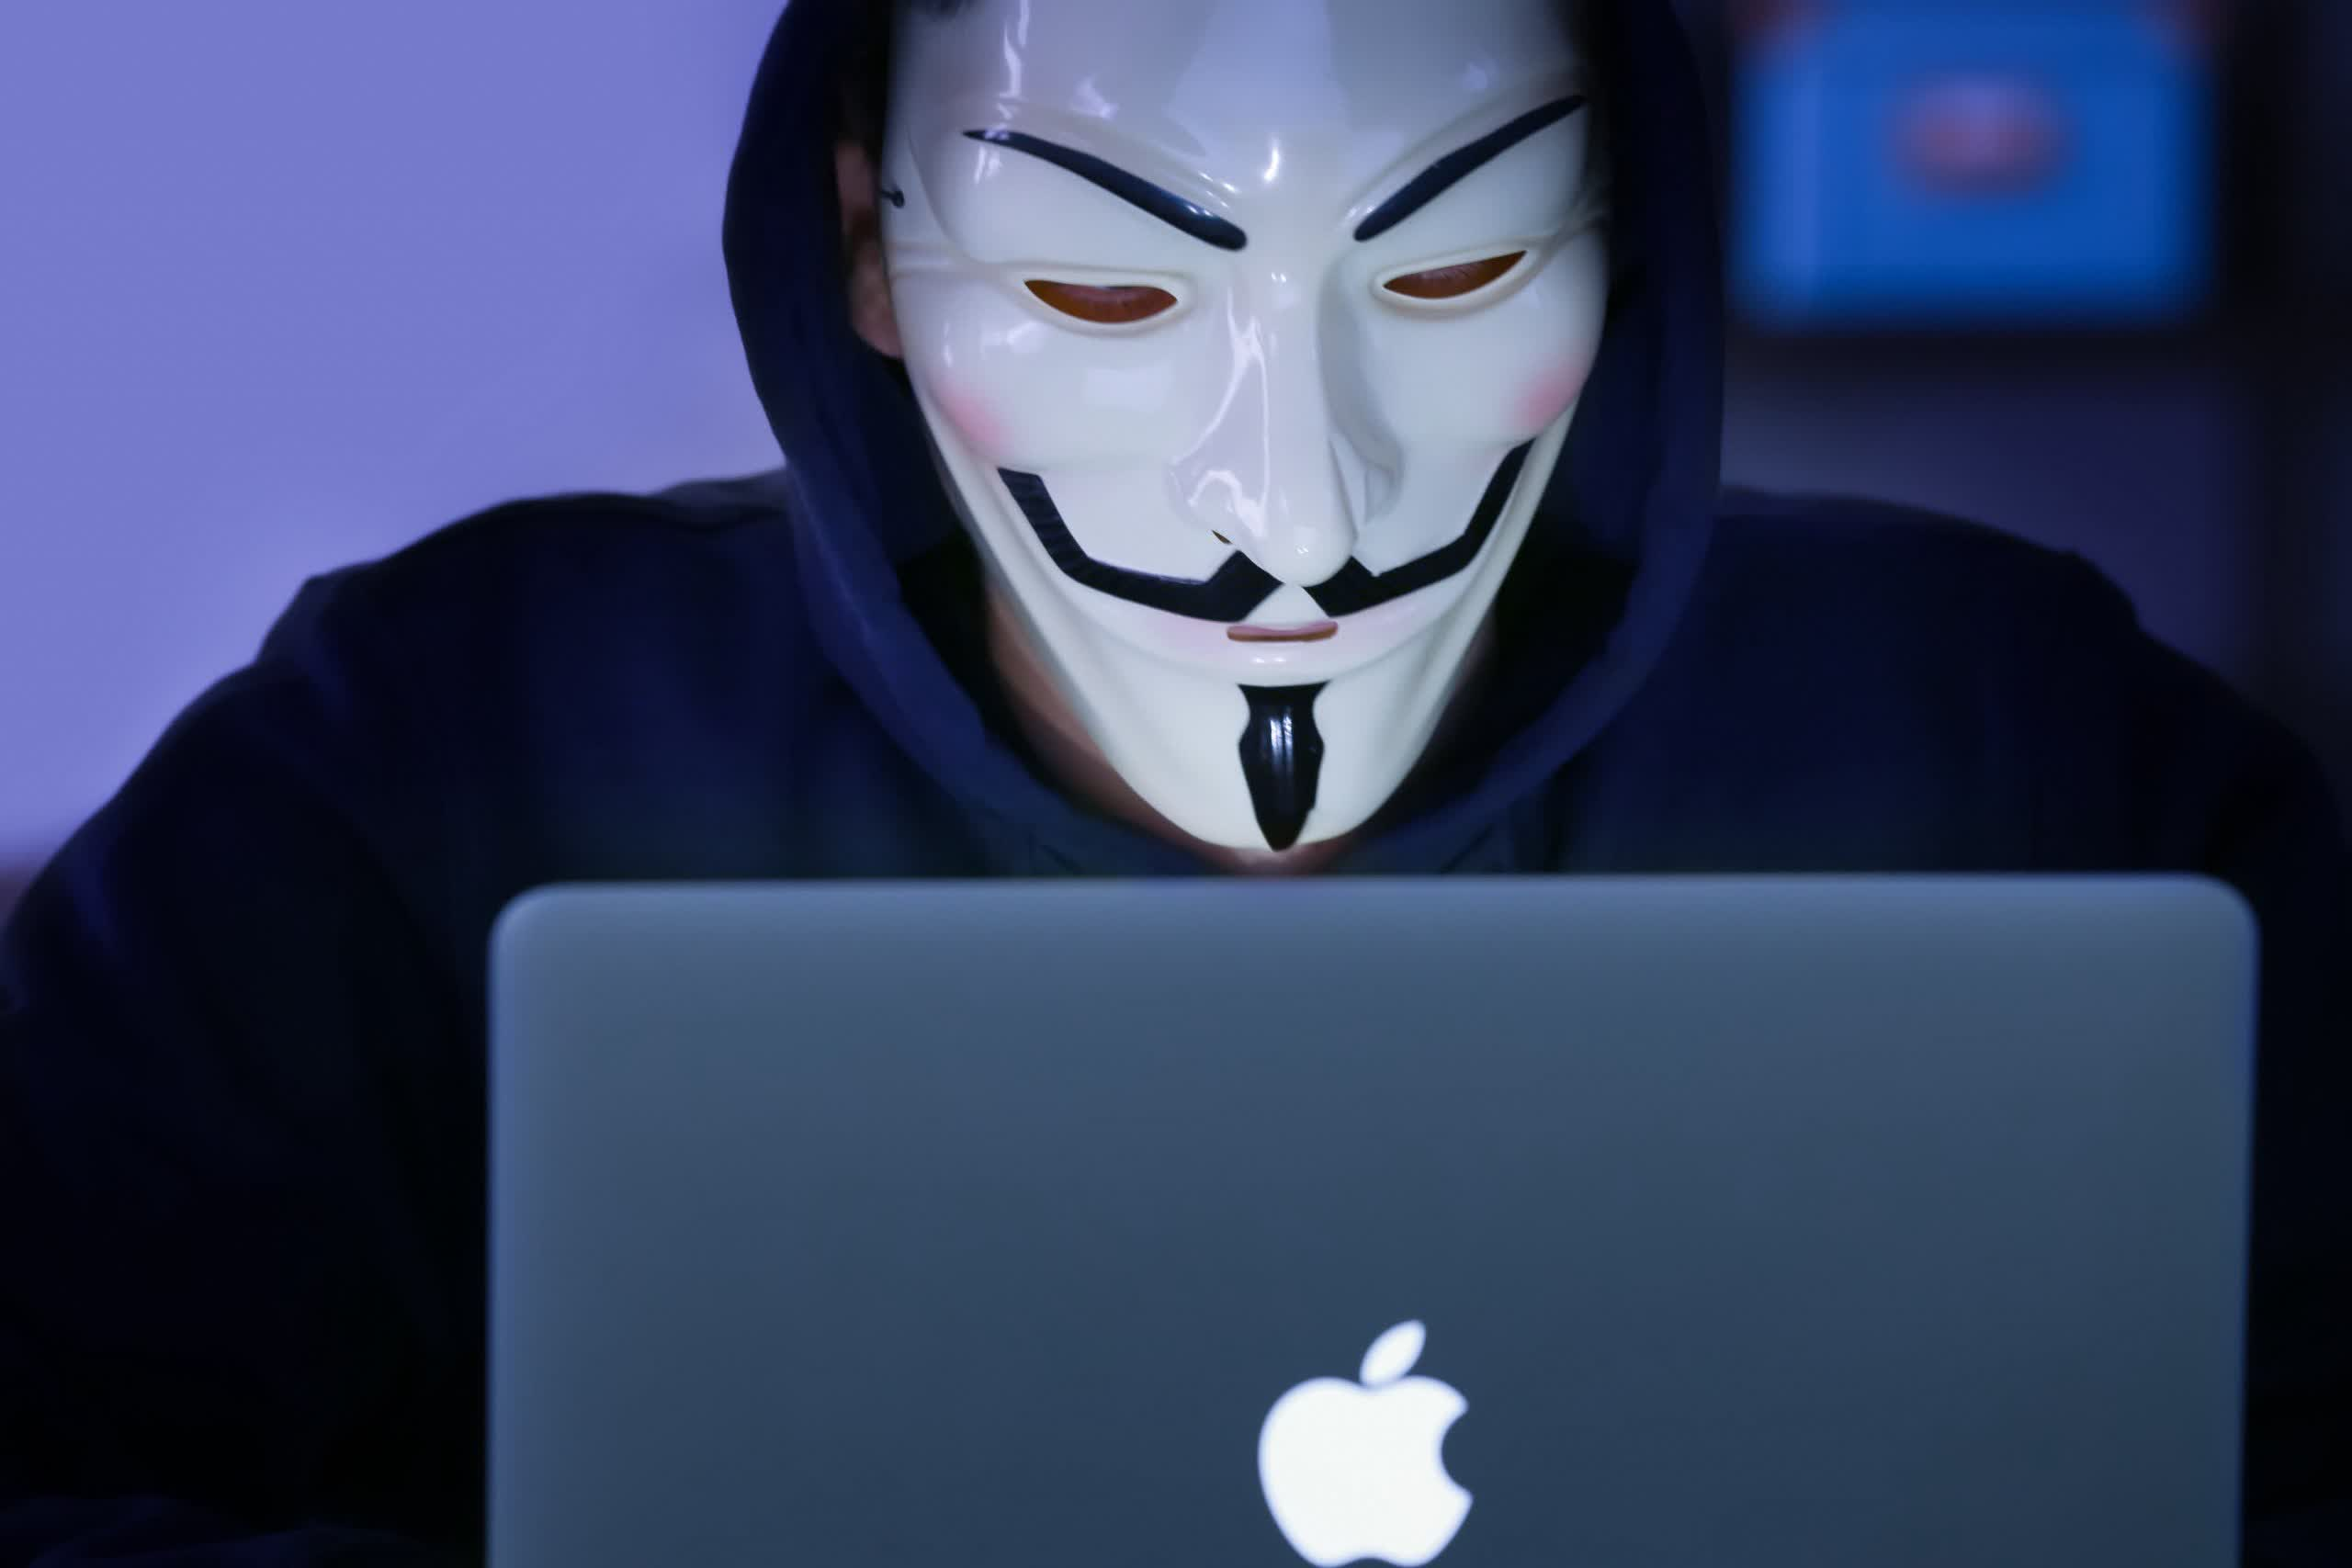 <p>Apple released patches for Most of its operating systems Now to squash an actively exploited WebKit Defect thumbnail